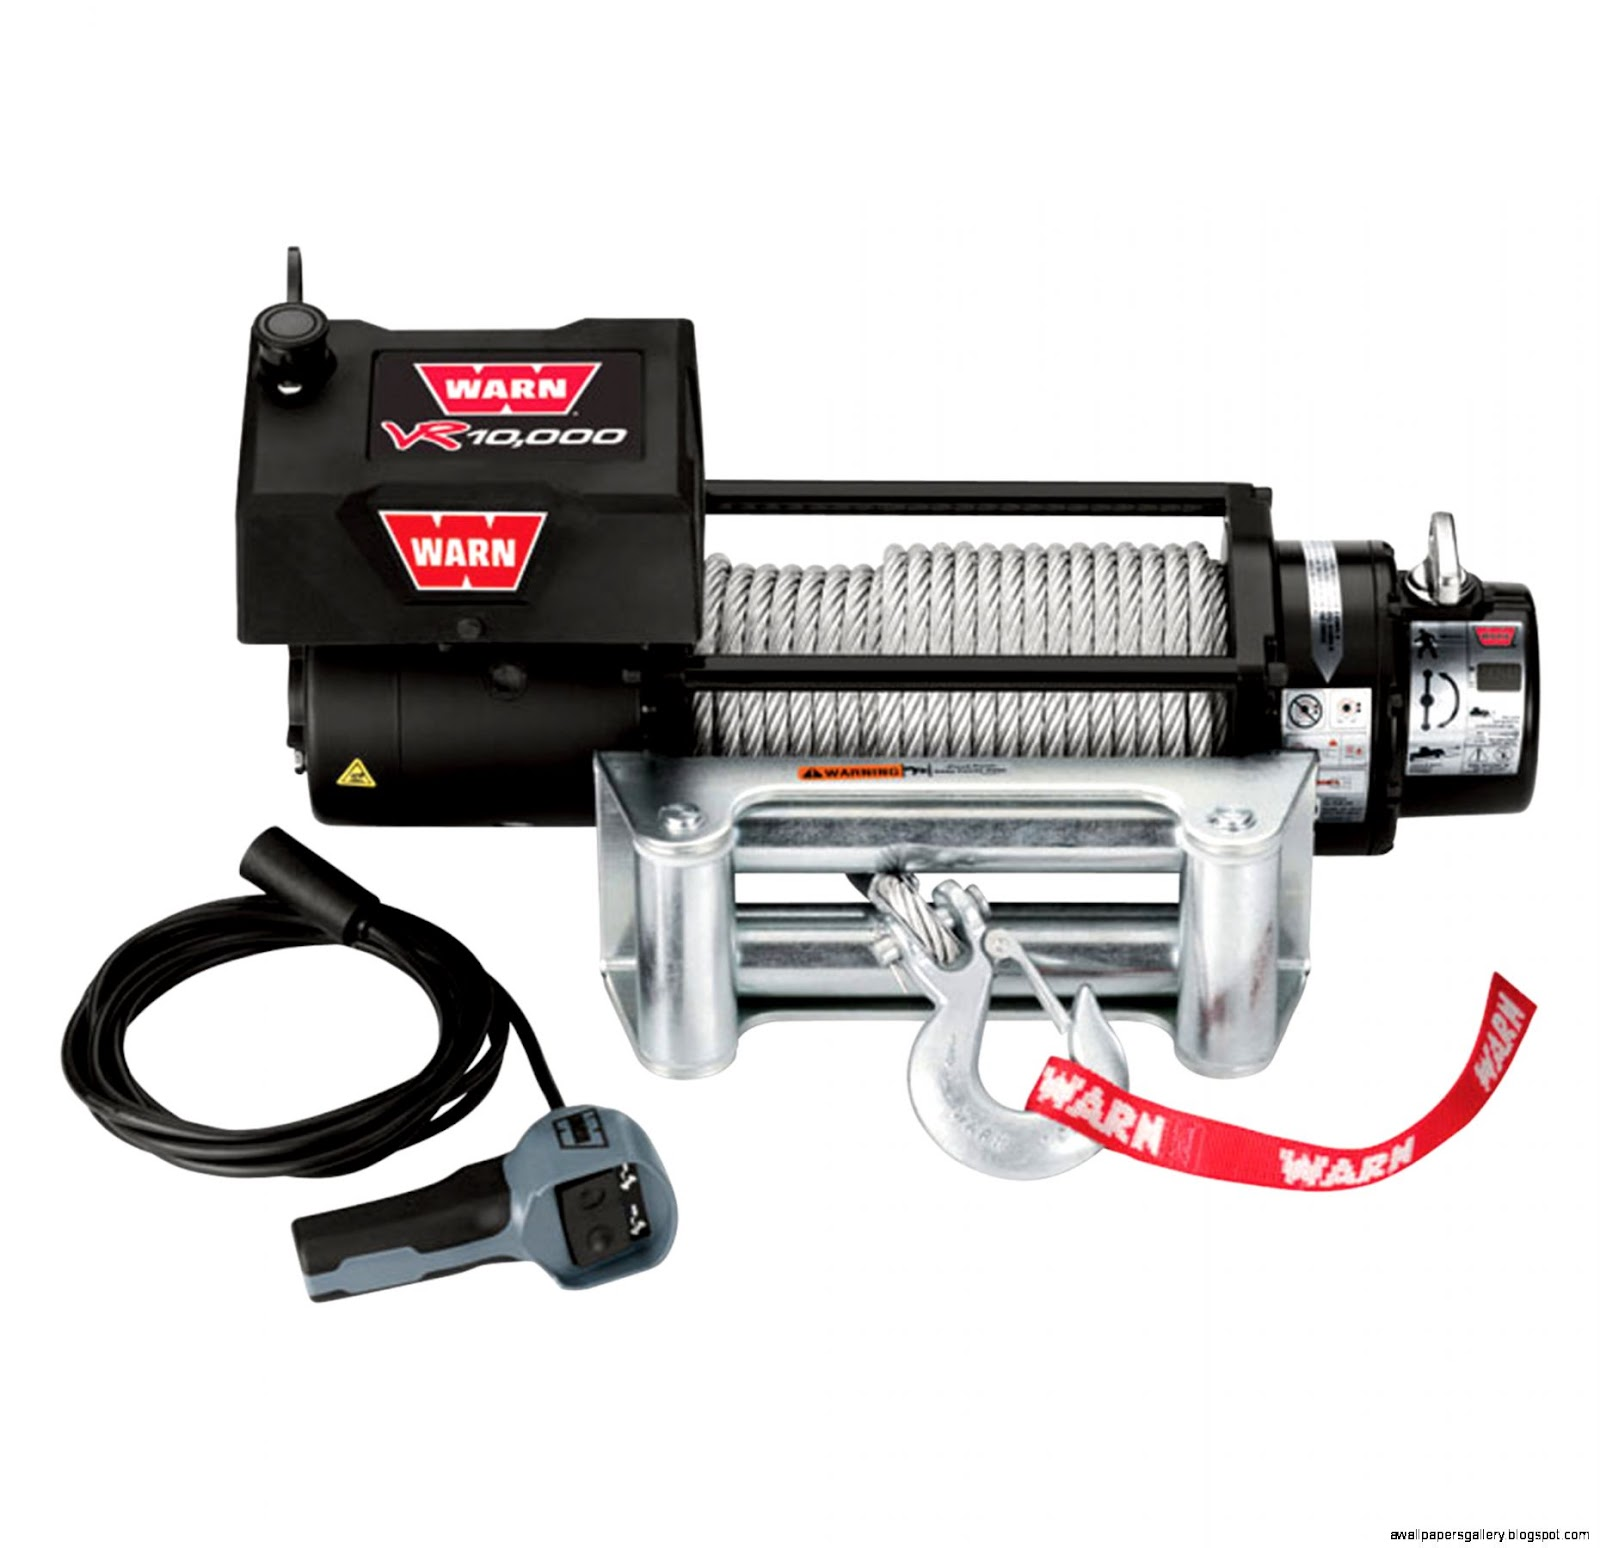 Shop 12 WARN ATV Winches products at Northern Tool + Equipment.